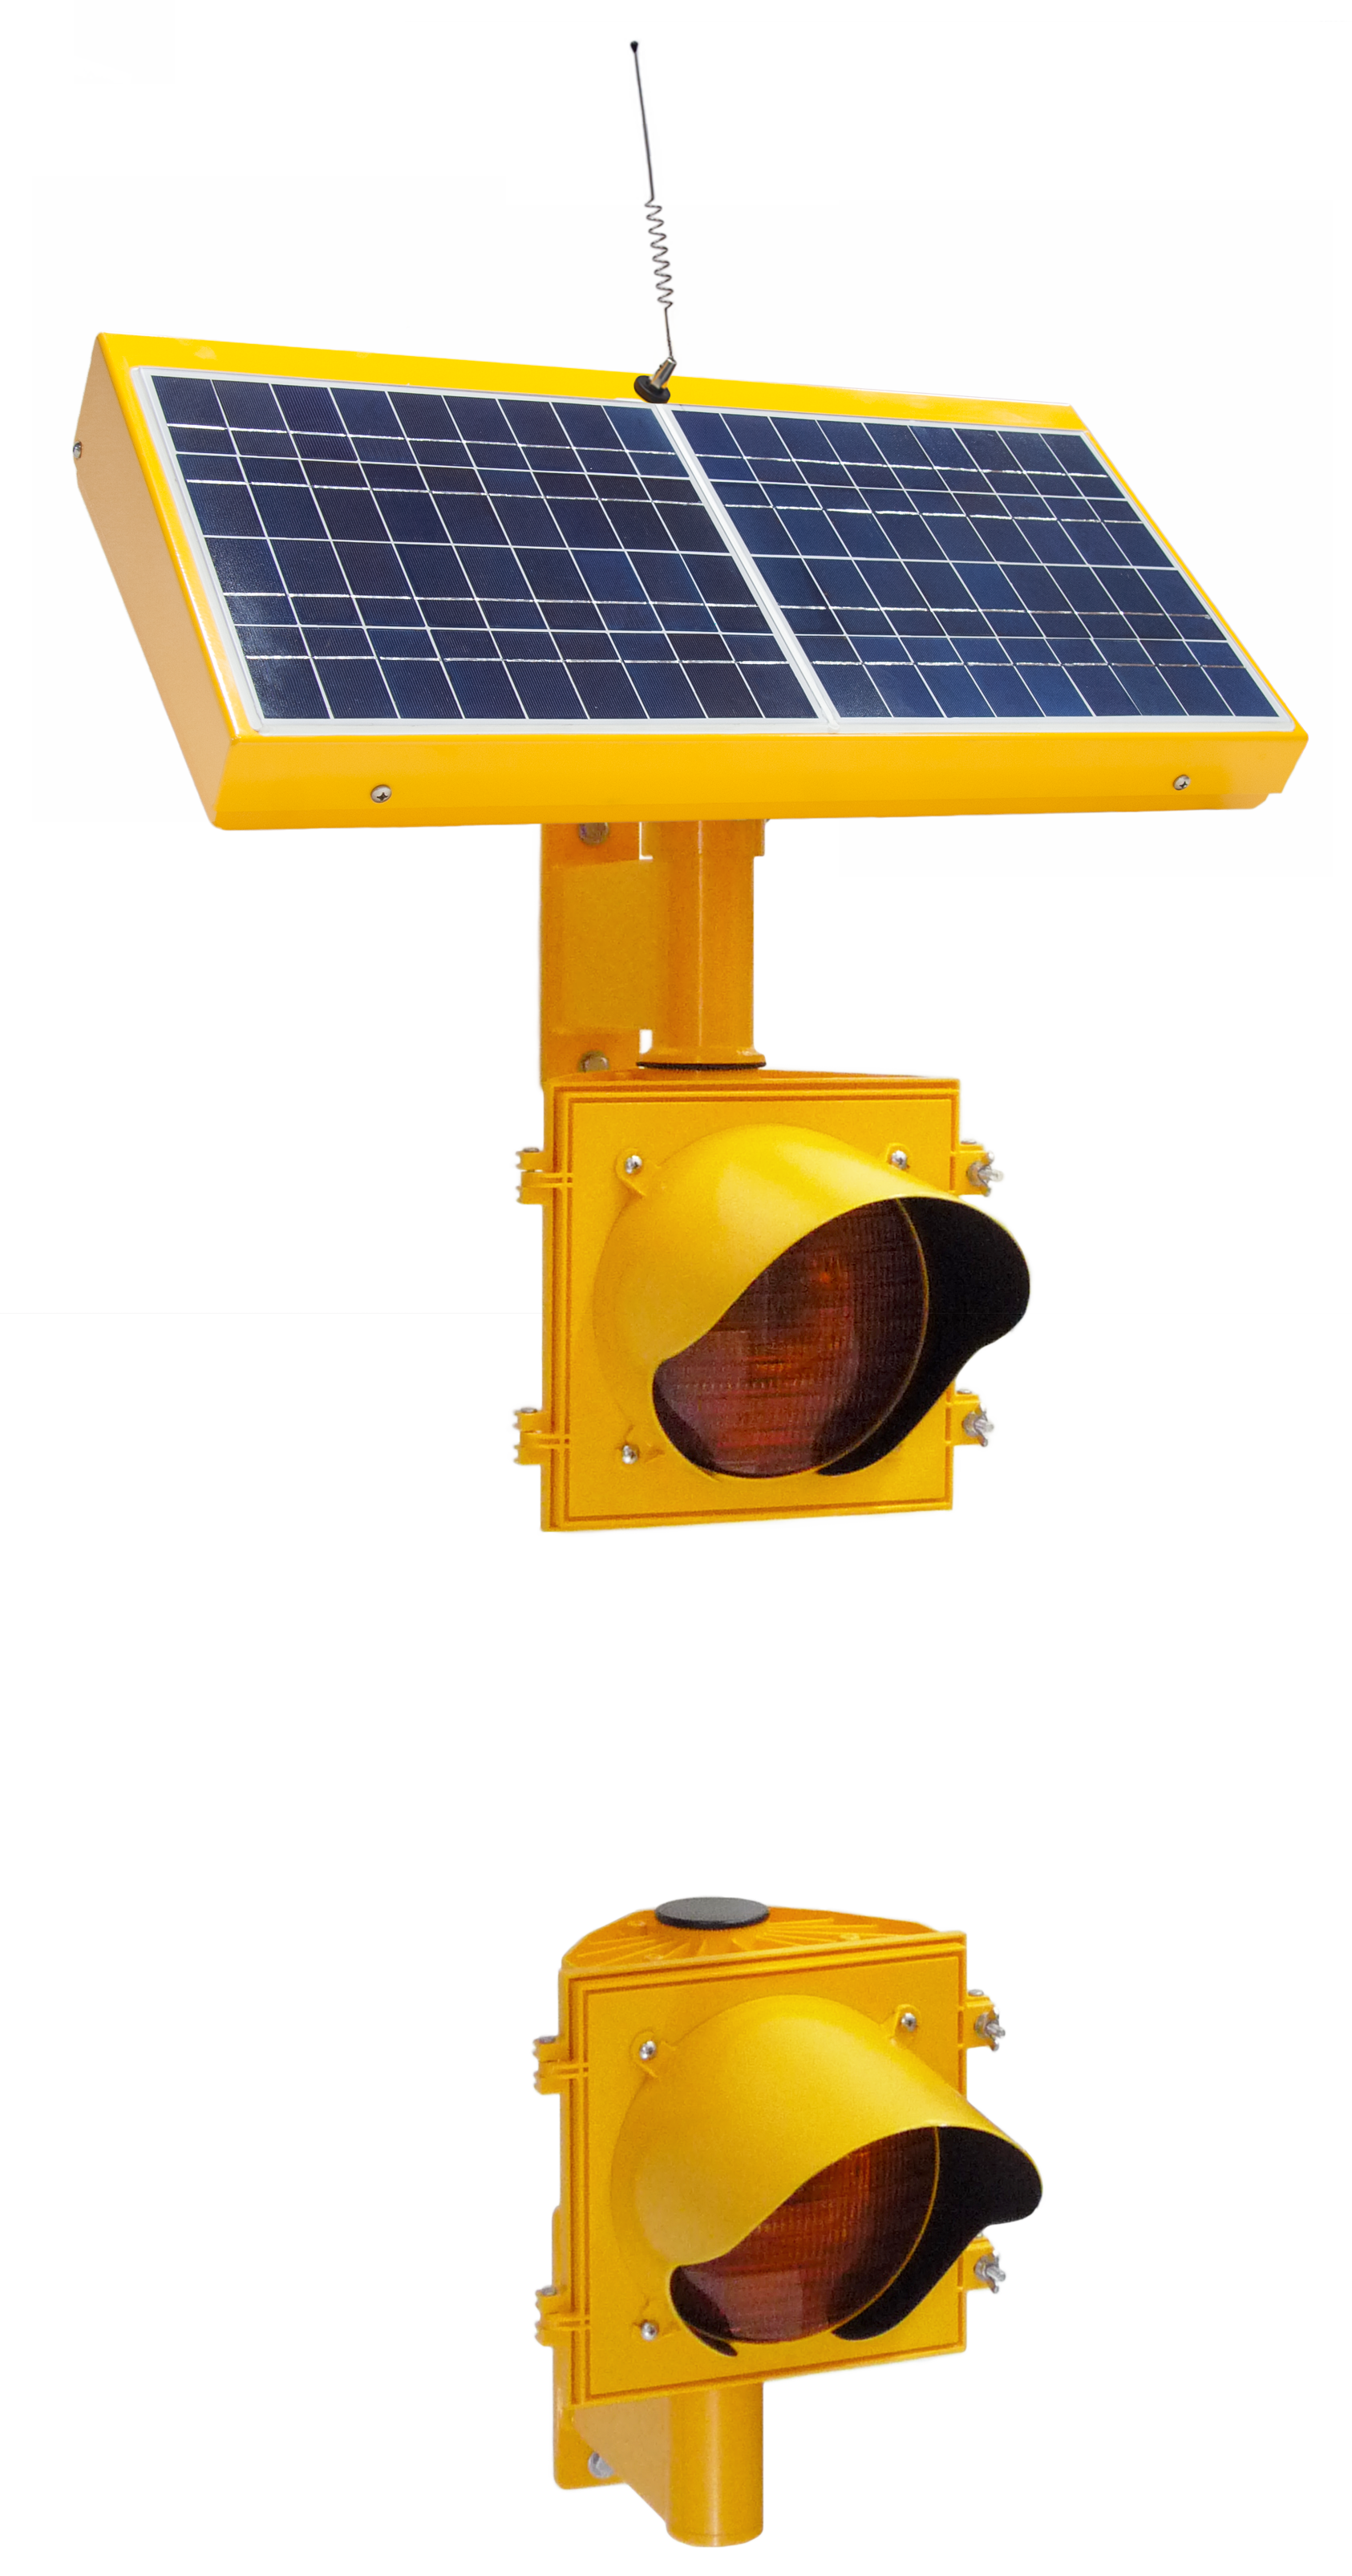 AB-7408 Pedestrian Activated Crosswalk Systems